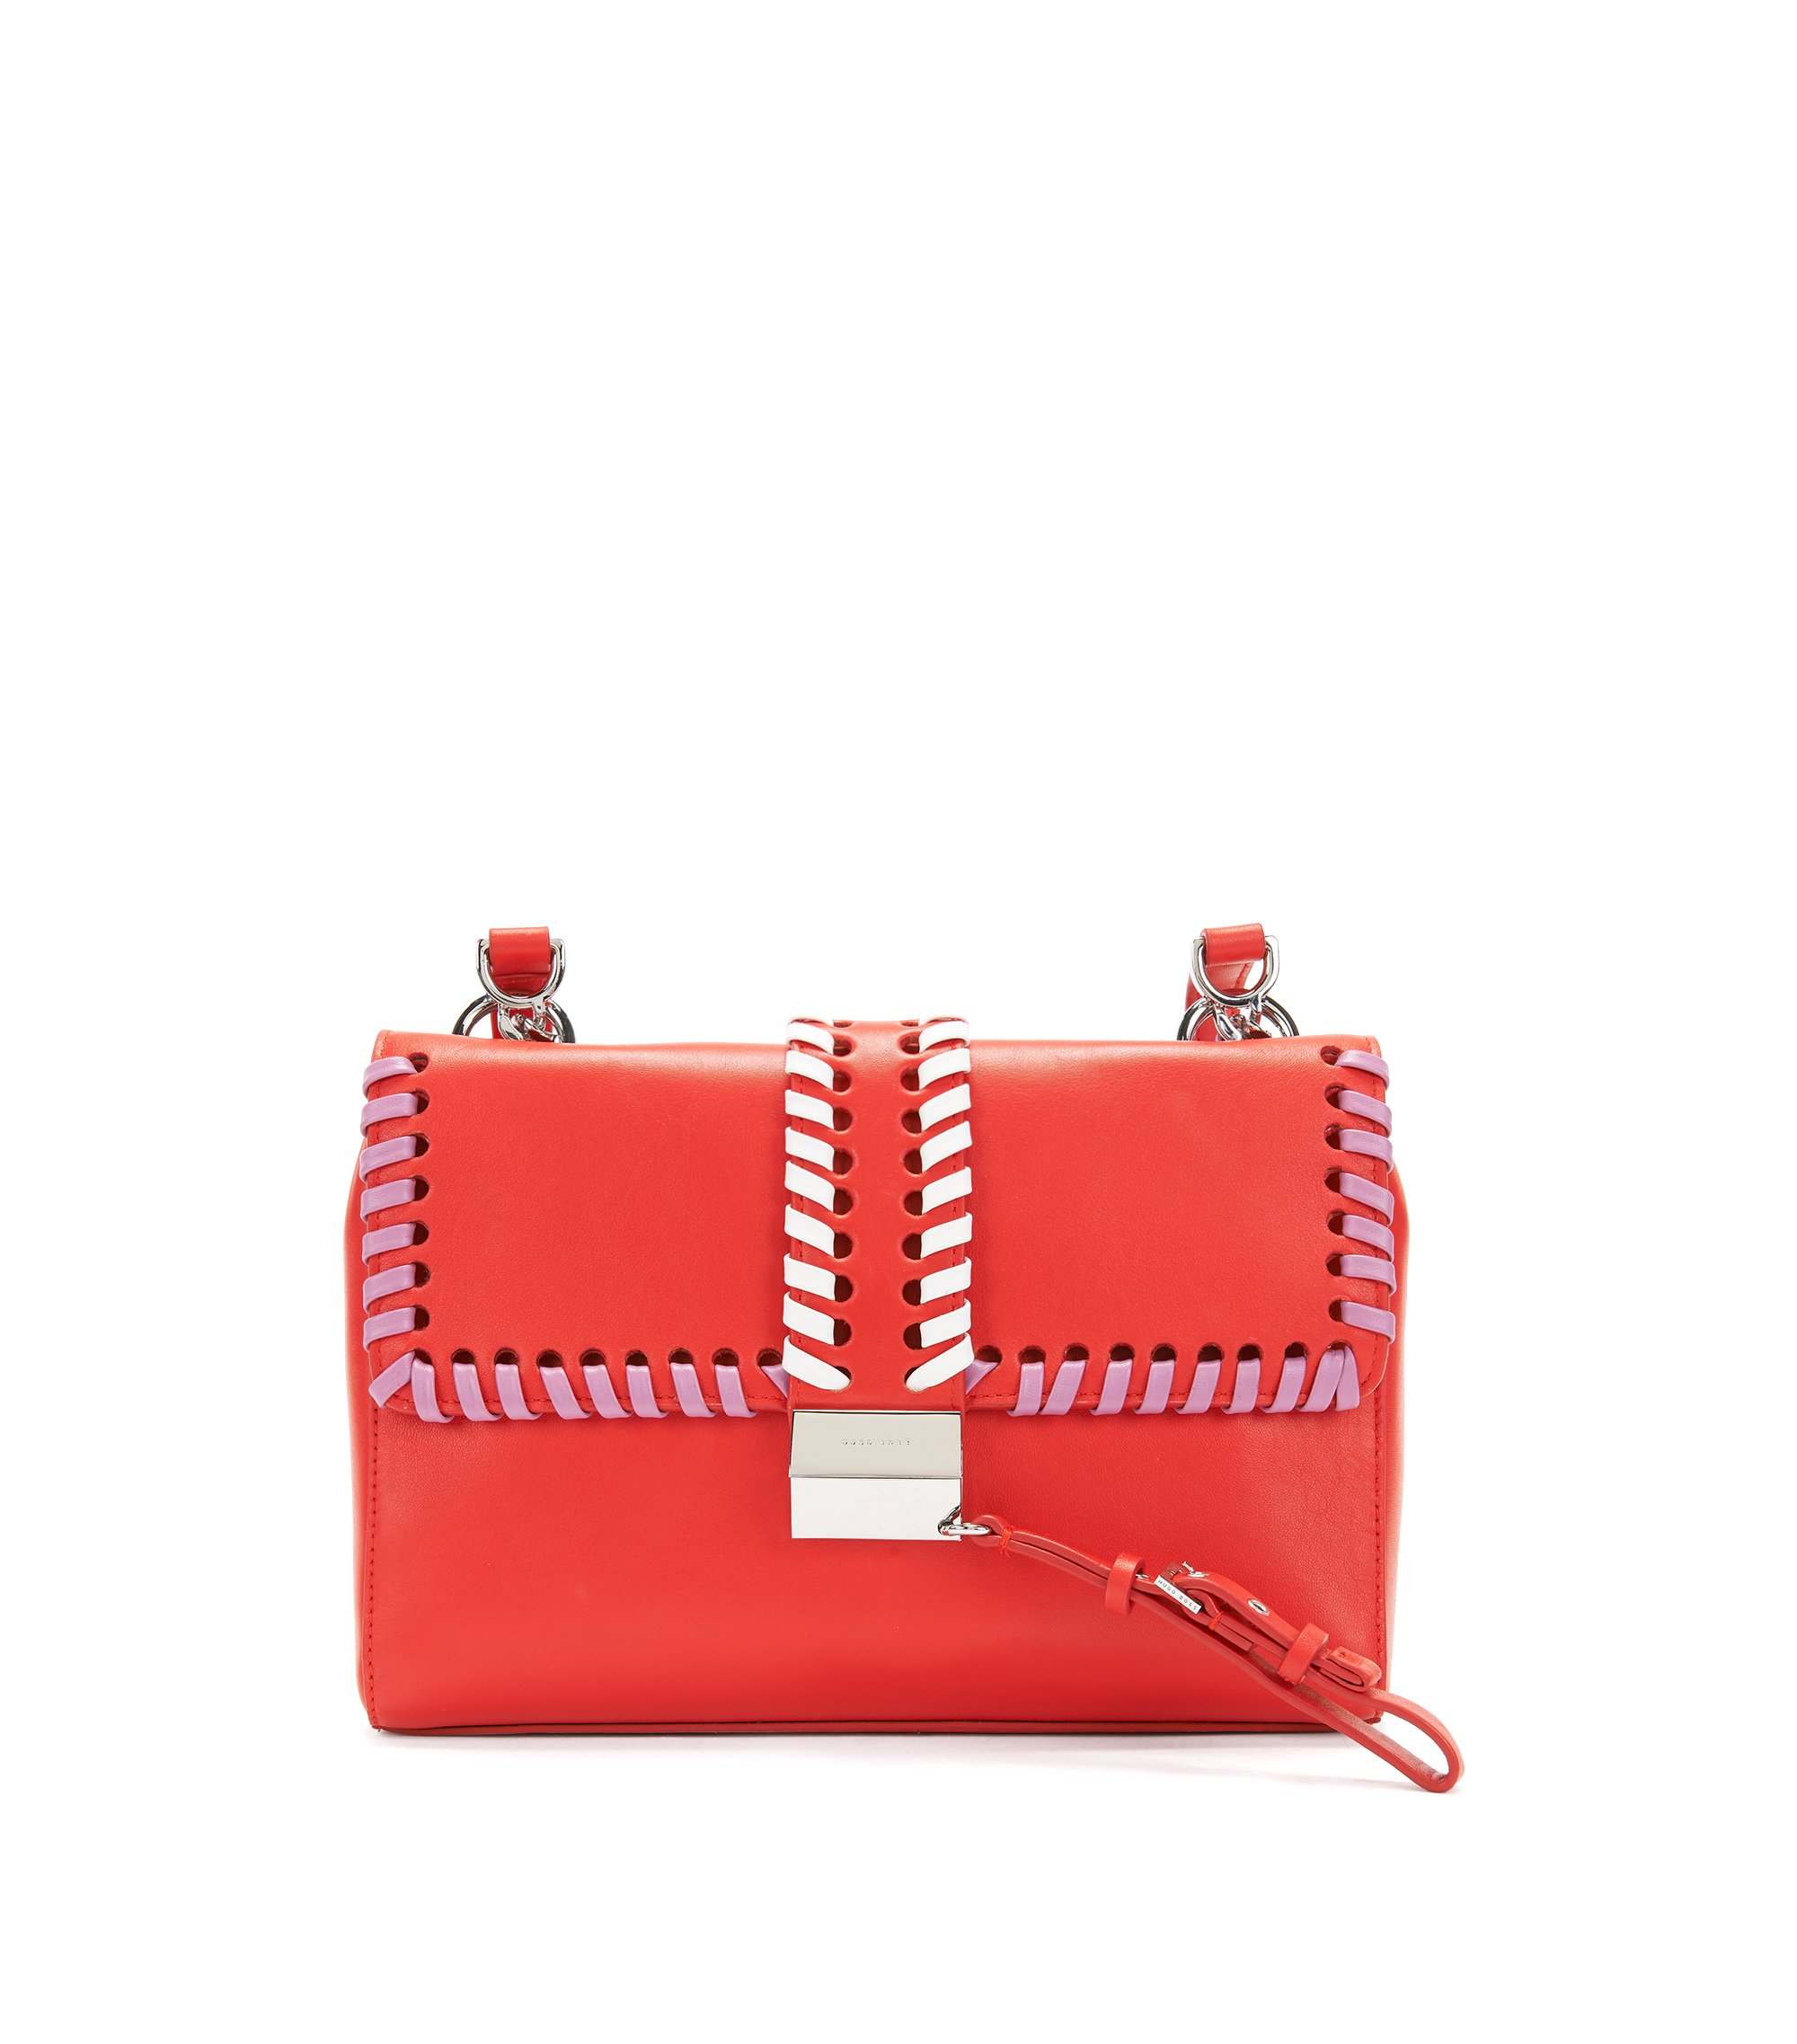 Woven-detail leather shoulder bag with lock closure, Red